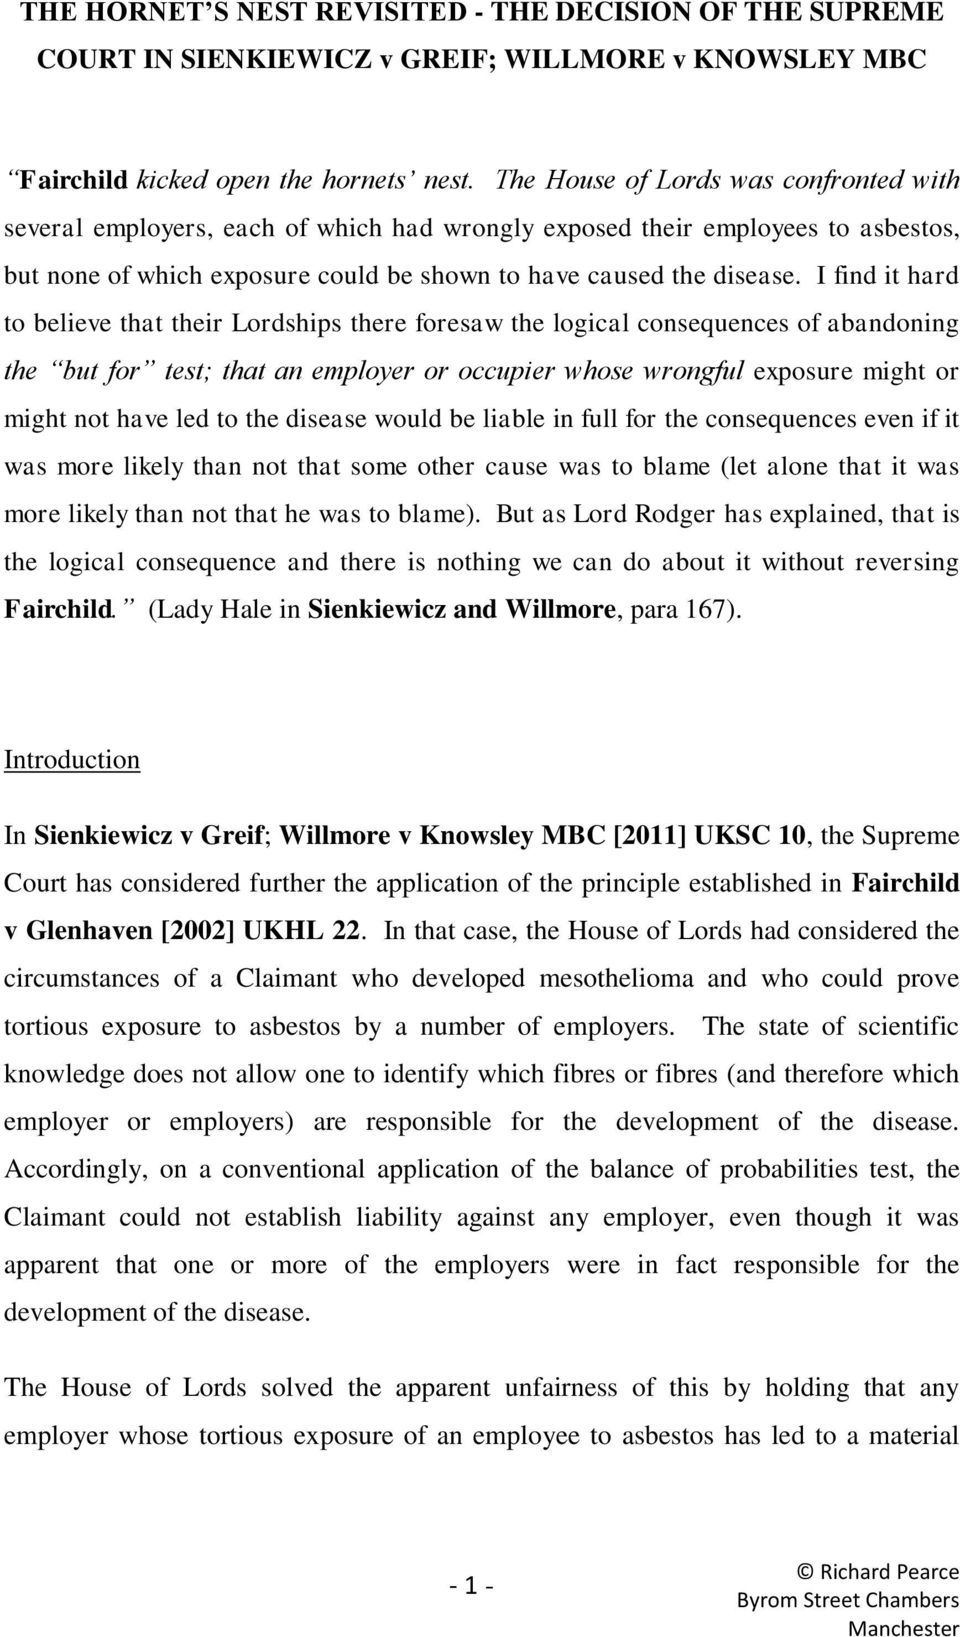 I find it hard to believe that their Lordships there foresaw the logical consequences of abandoning the but for test; that an employer or occupier whose wrongful exposure might or might not have led